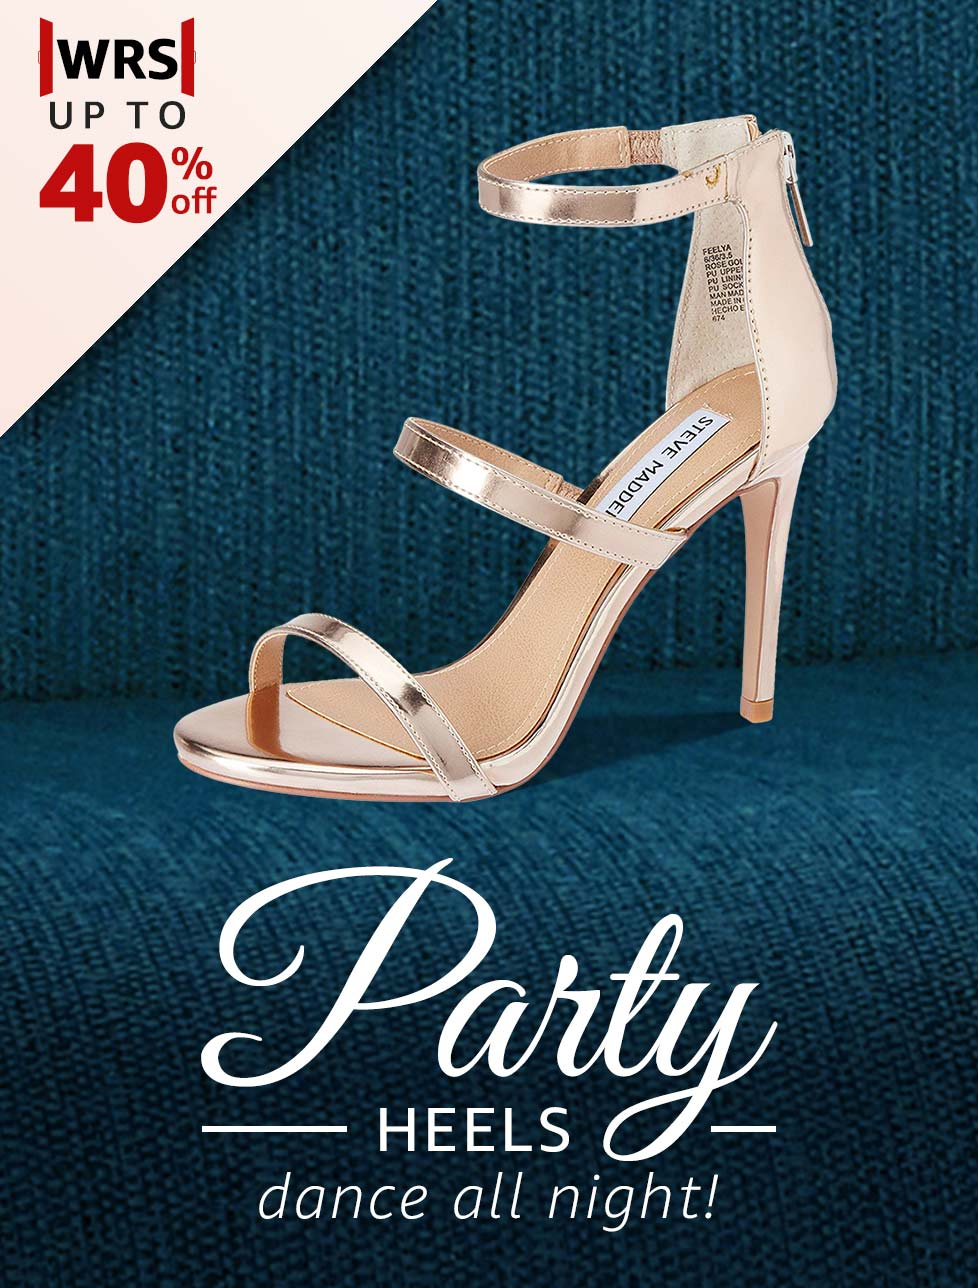 Party Heels to dance all night!